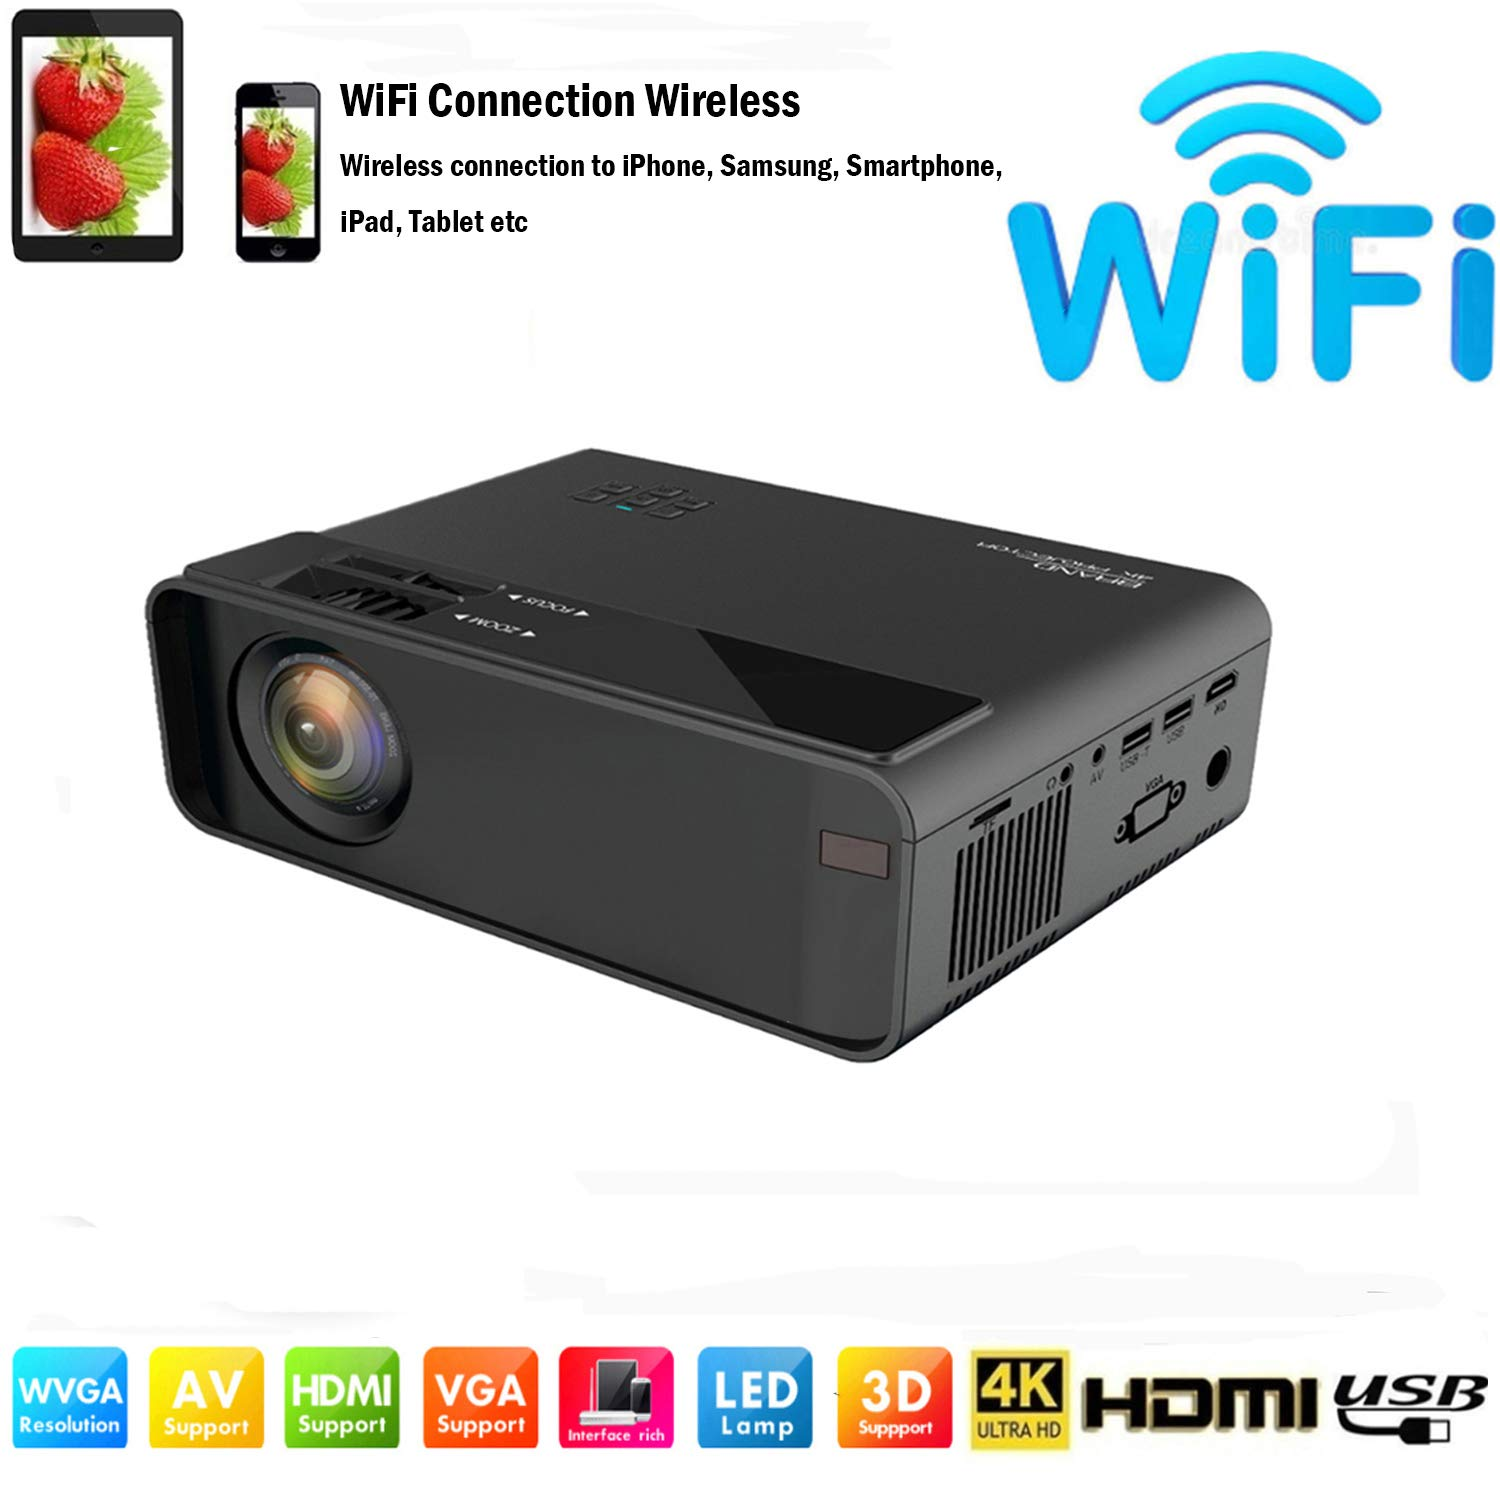 SOTEFE Mini LED Projector Portable 7000 Lumens-WiFi Video Projectors 1080P Full HD for iPhone Samsung Smartphone Wireless Projector HDMI 75000 Hours Multimedia Home Projector Office Theater Movie by SOTEFE